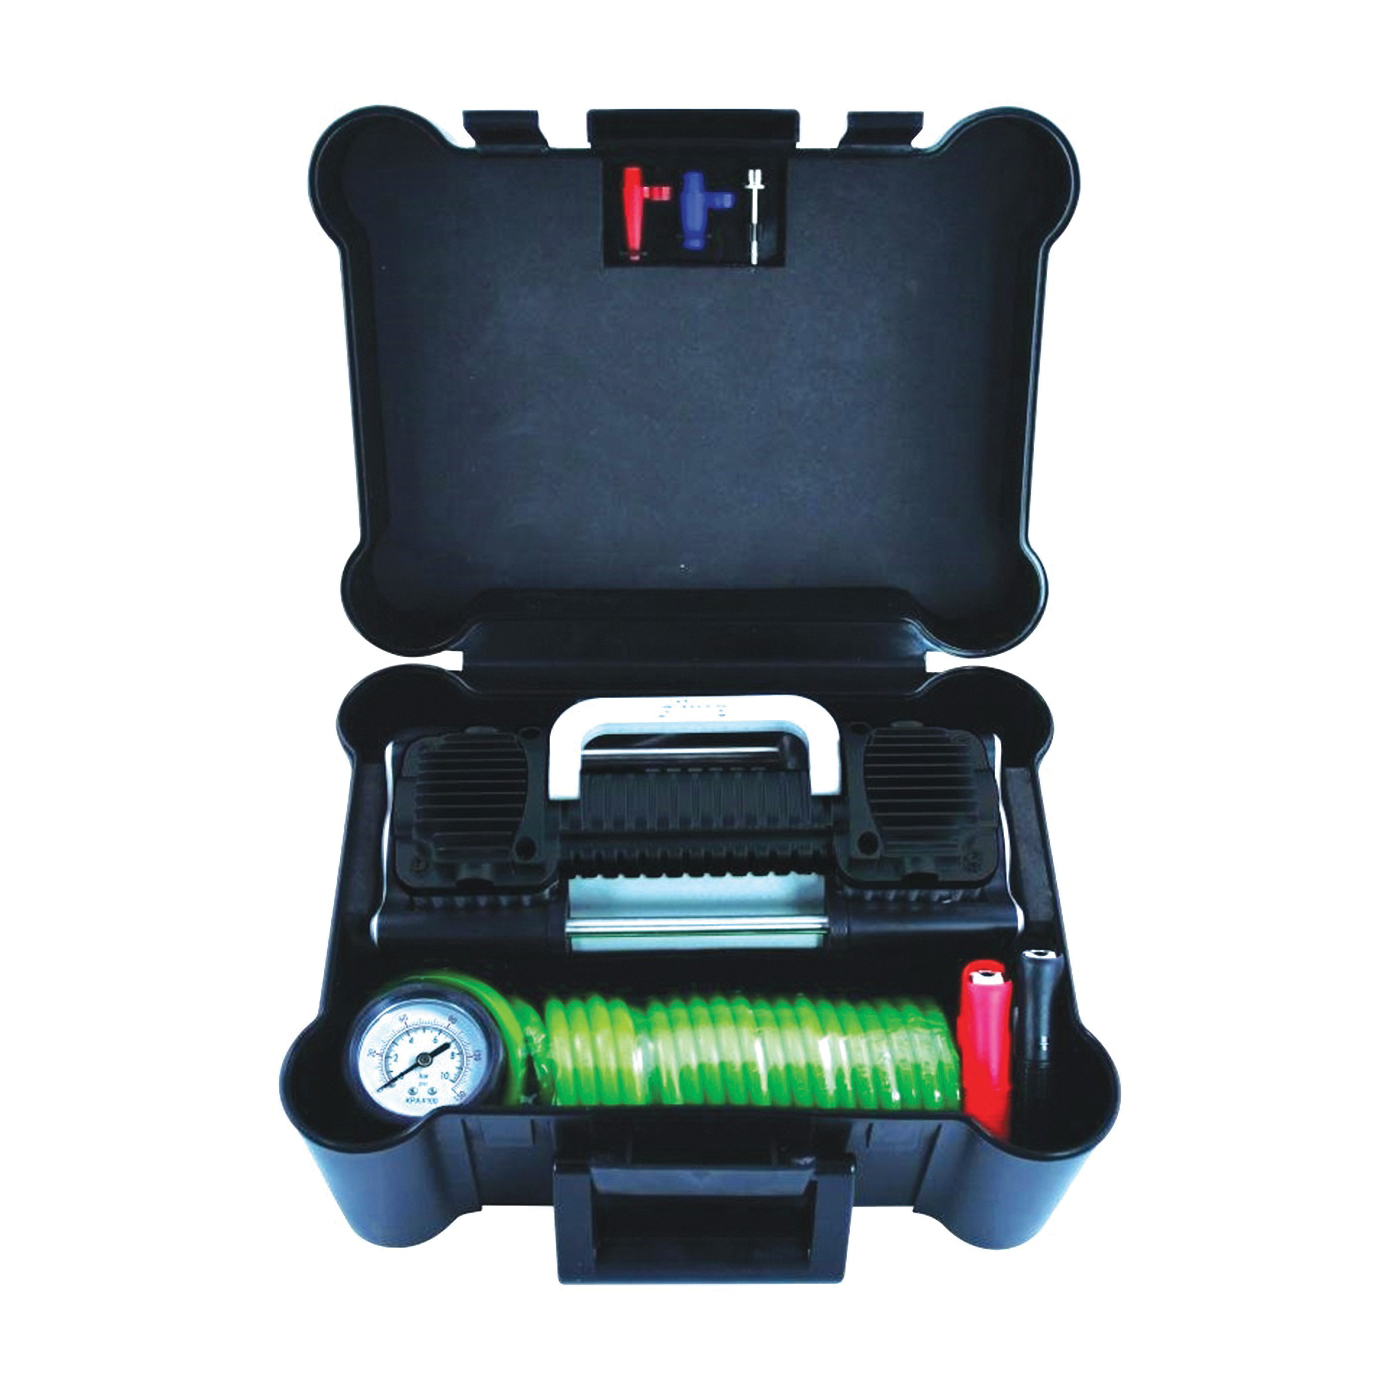 Picture of Slime 2X 40026 Tire Inflator, 12 V, 0 to 150 psi Pressure, Dial Gauge